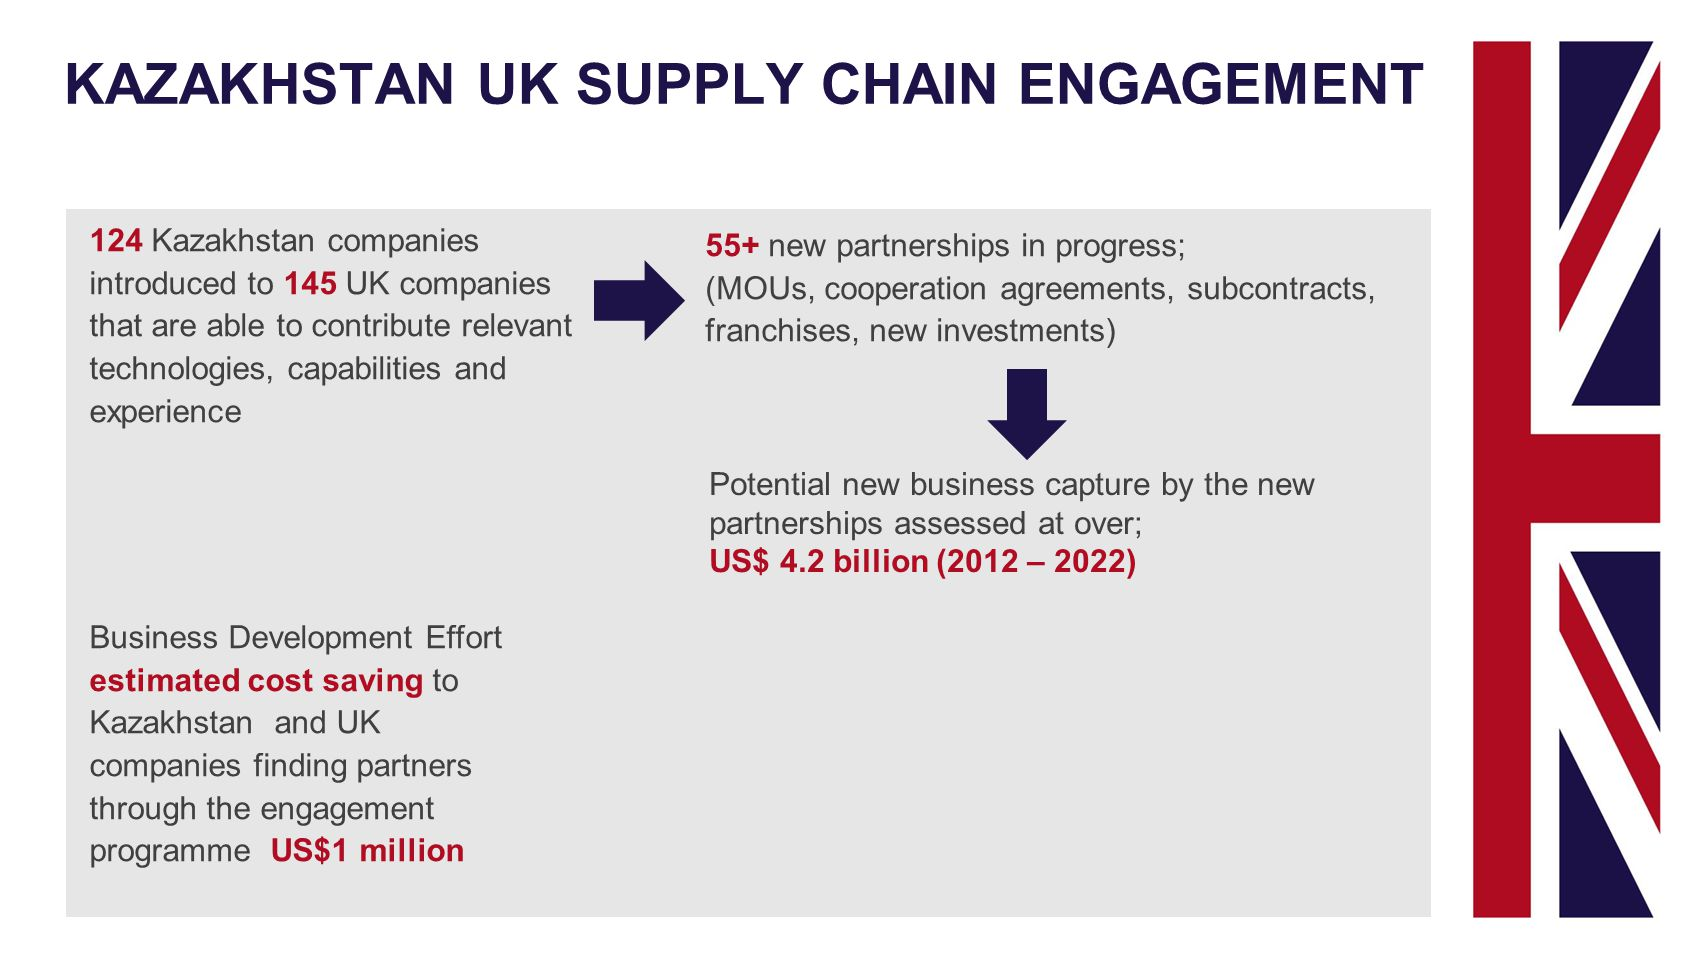 124 Kazakhstan companies introduced to 145 UK companies that are able to contribute relevant technologies, capabilities and experience 55+ new partnerships in progress; (MOUs, cooperation agreements, subcontracts, franchises, new investments) Potential new business capture by the new partnerships assessed at over; US$ 4.2 billion (2012 – 2022) Business Development Effort estimated cost saving to Kazakhstan and UK companies finding partners through the engagement programme US$1 million KAZAKHSTAN UK SUPPLY CHAIN ENGAGEMENT